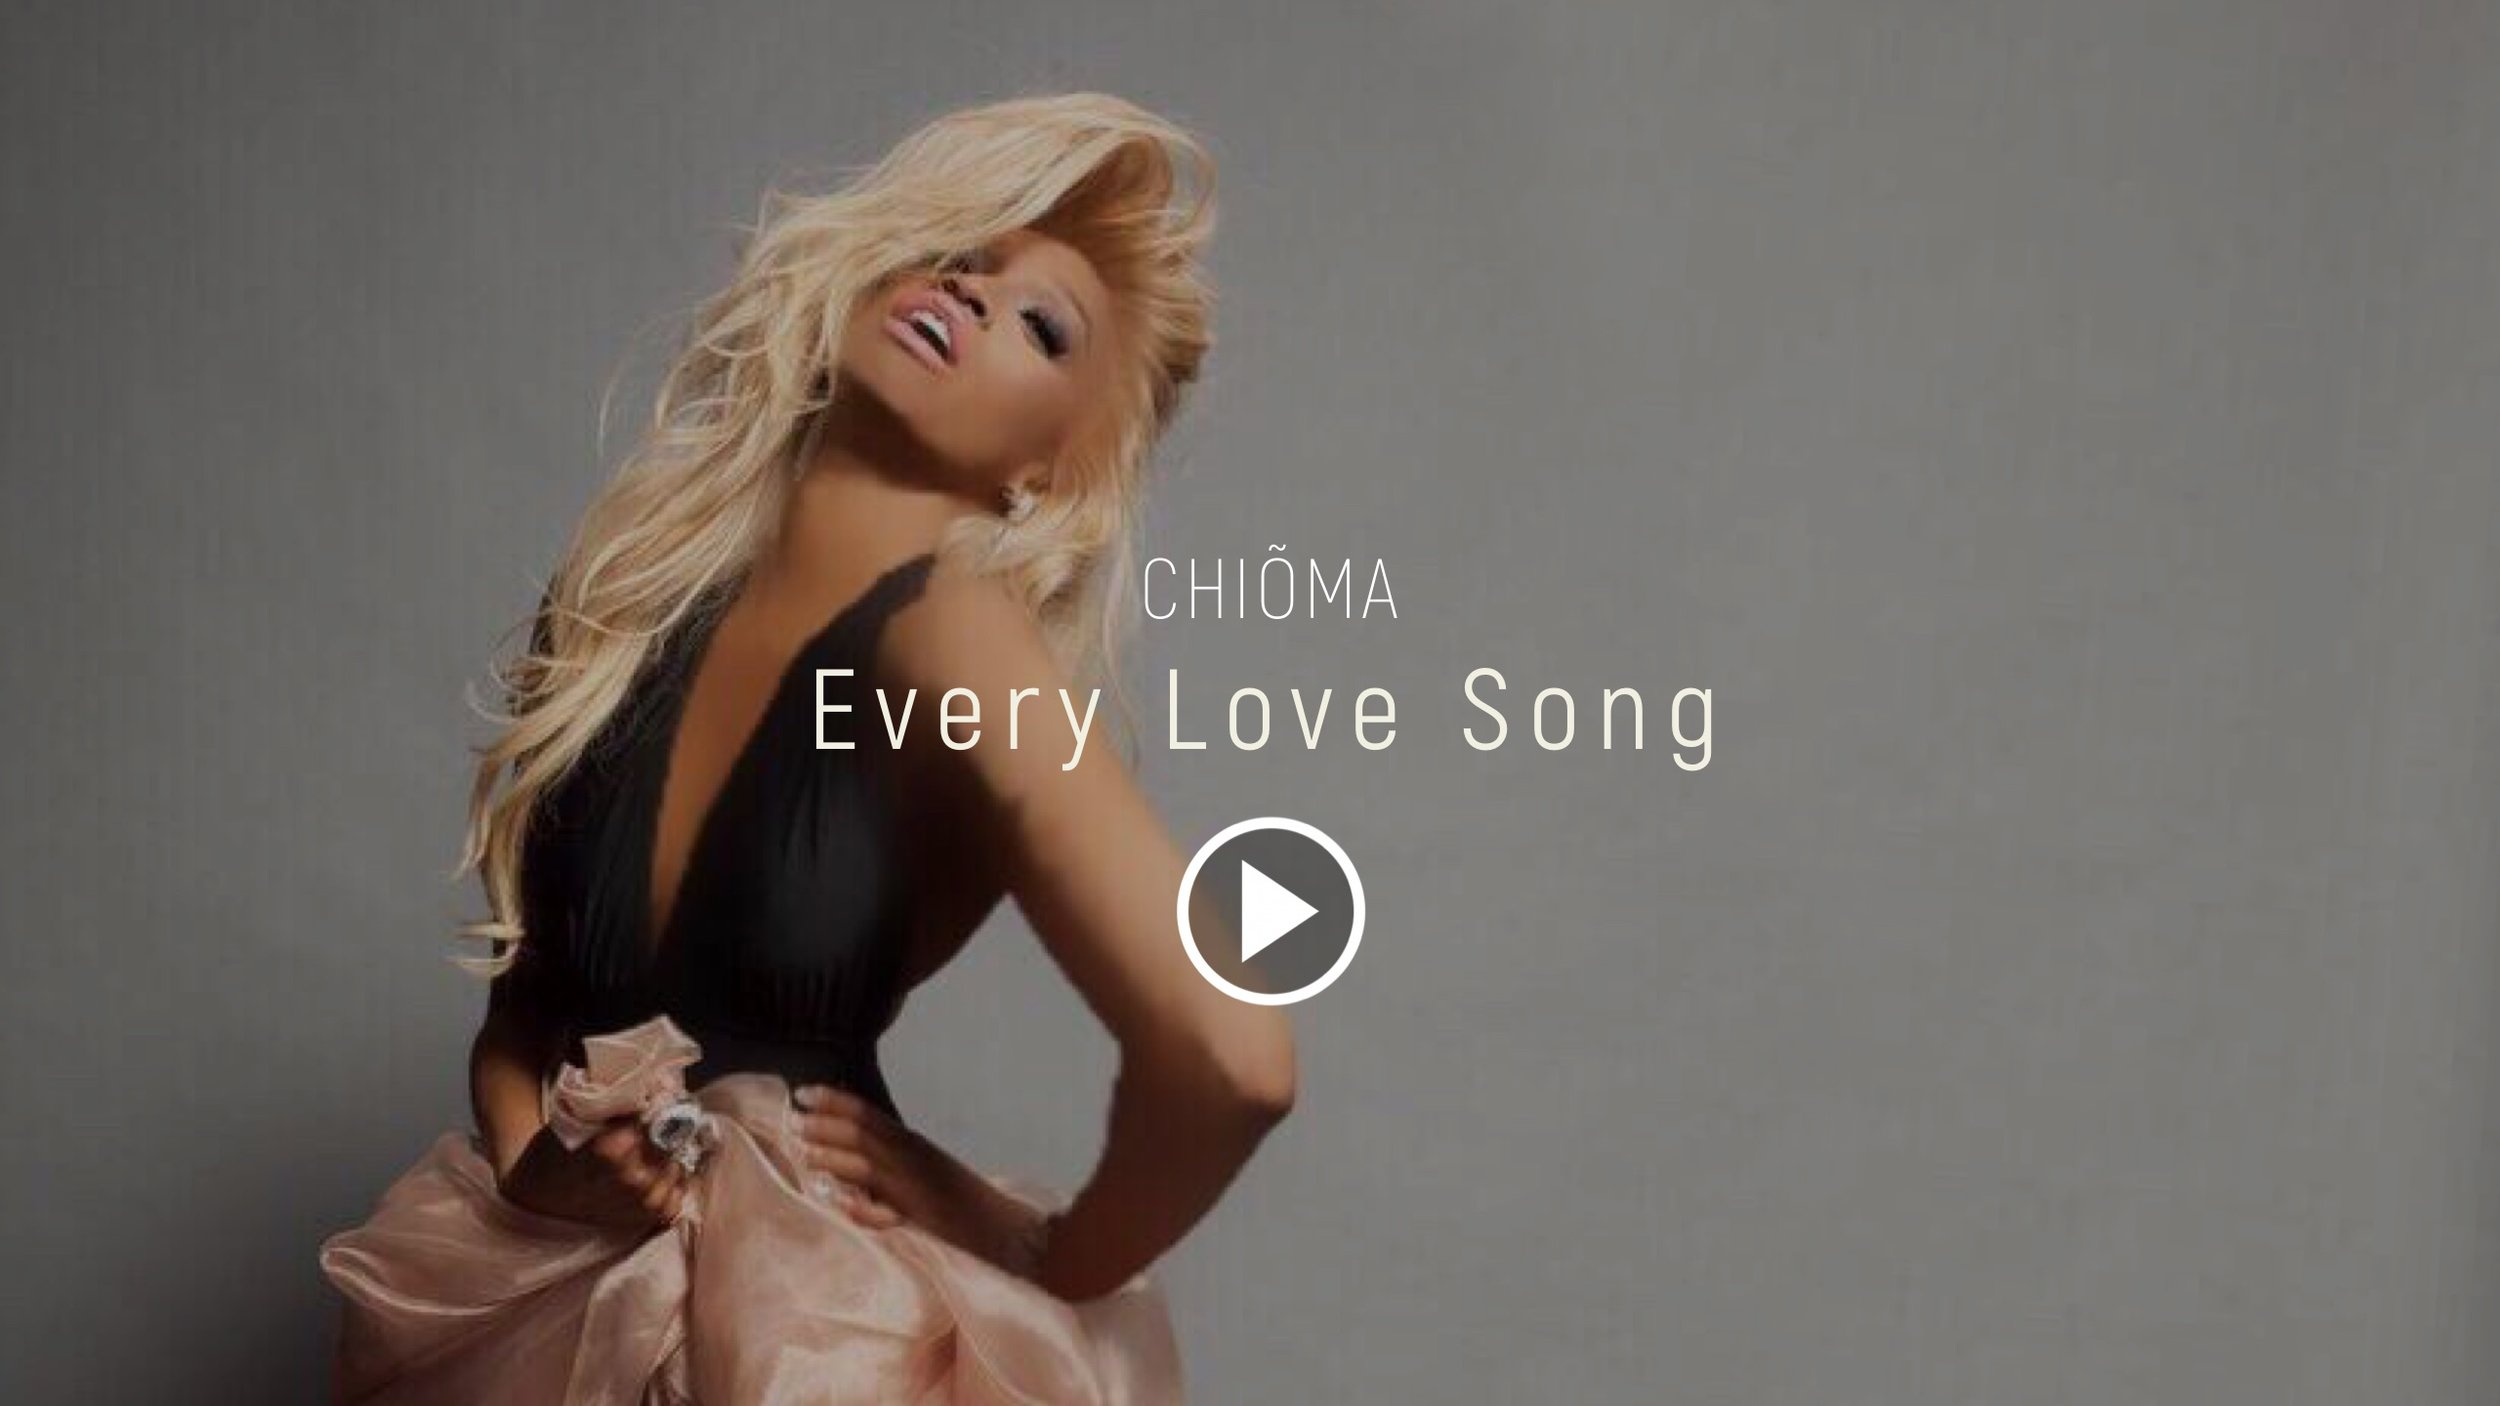 chioma every love song